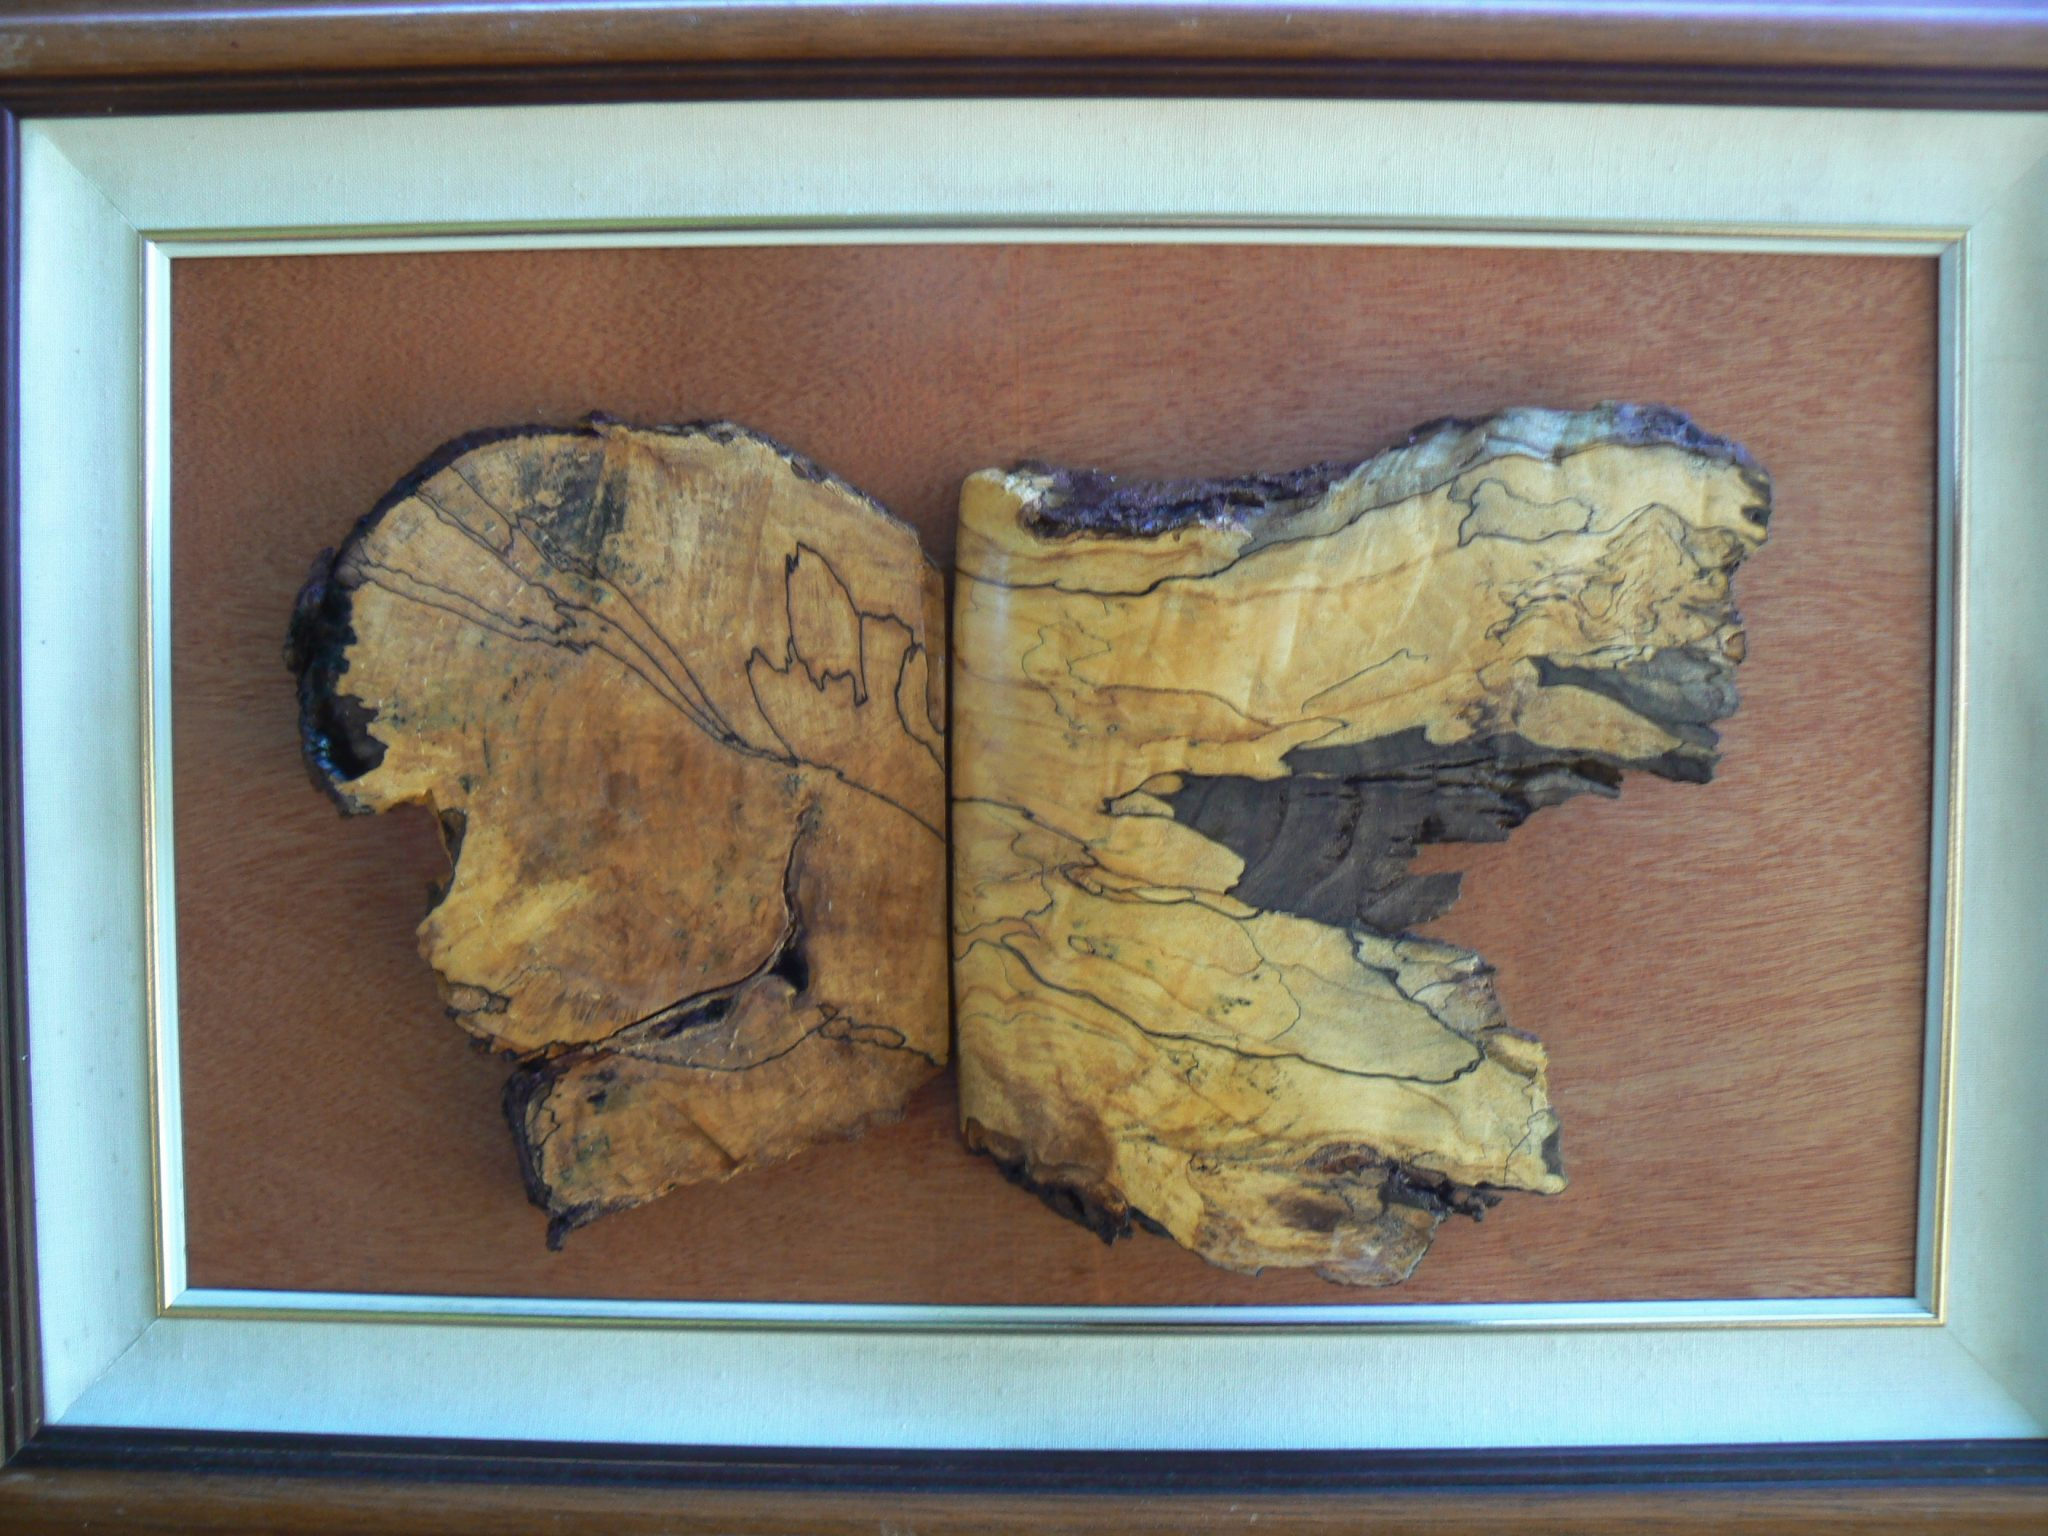 Puppy Butterfly, spaulding maple, mahogany, framed